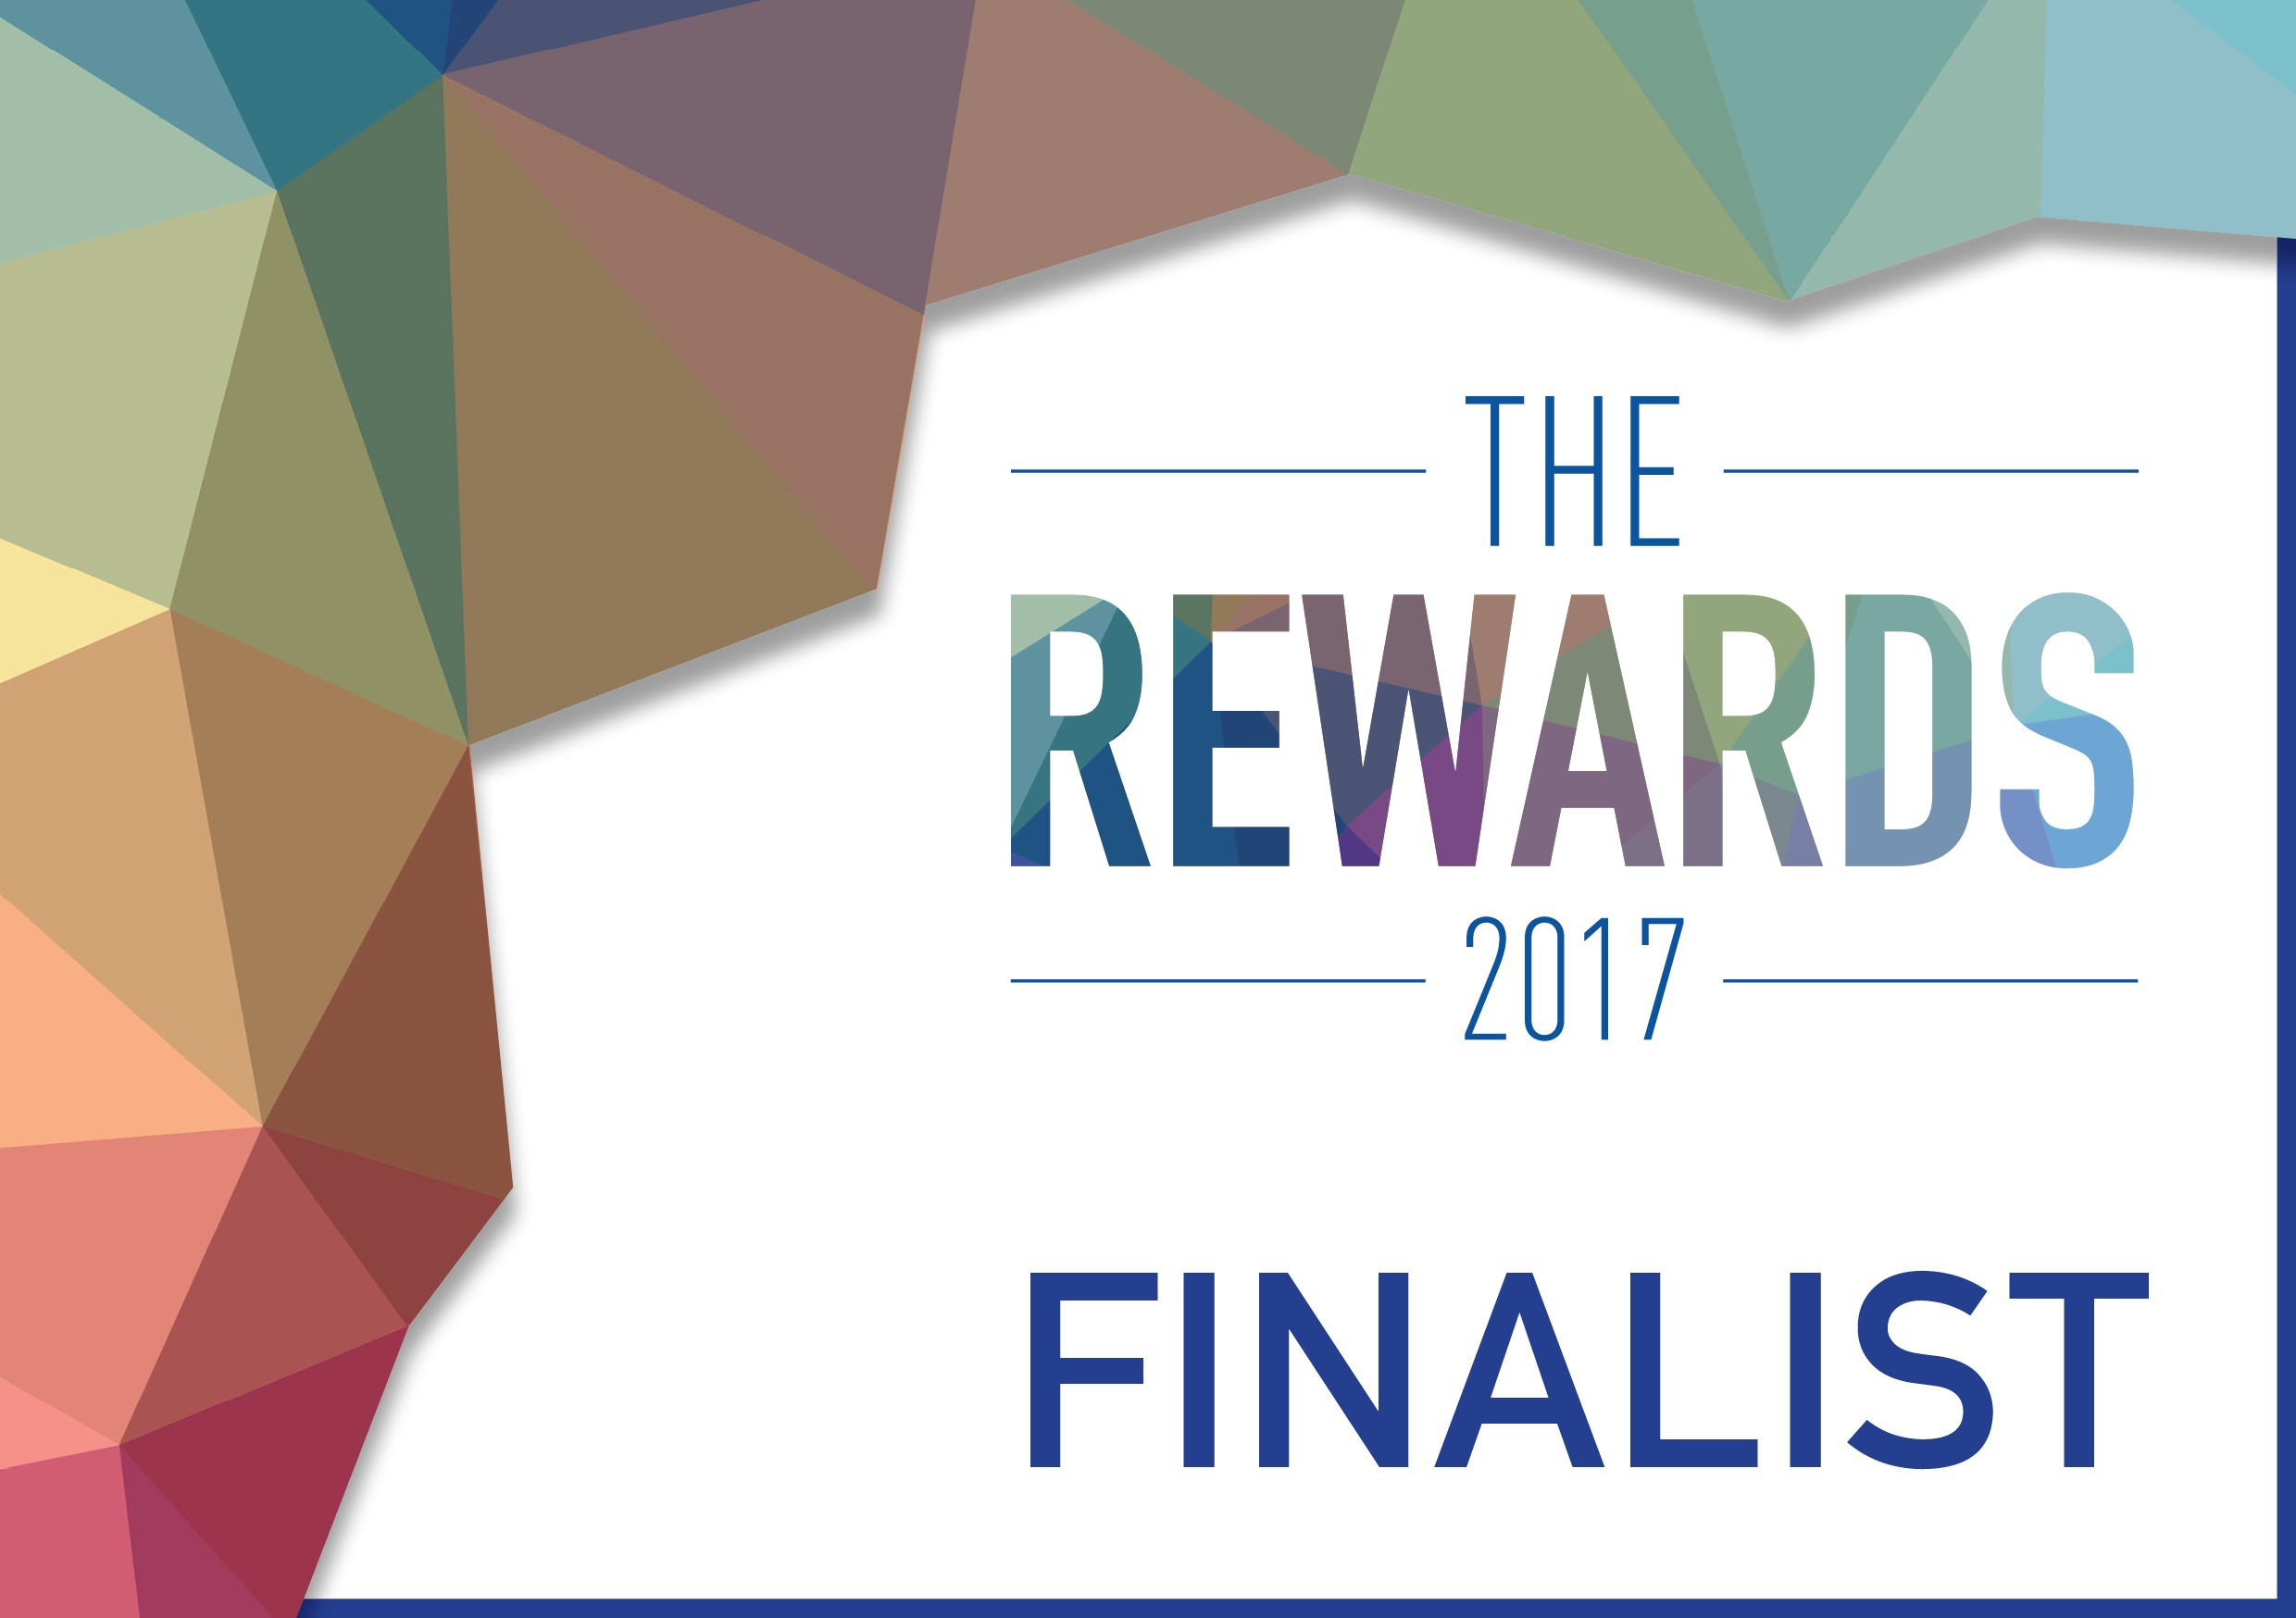 The Rewards 2017 finalist